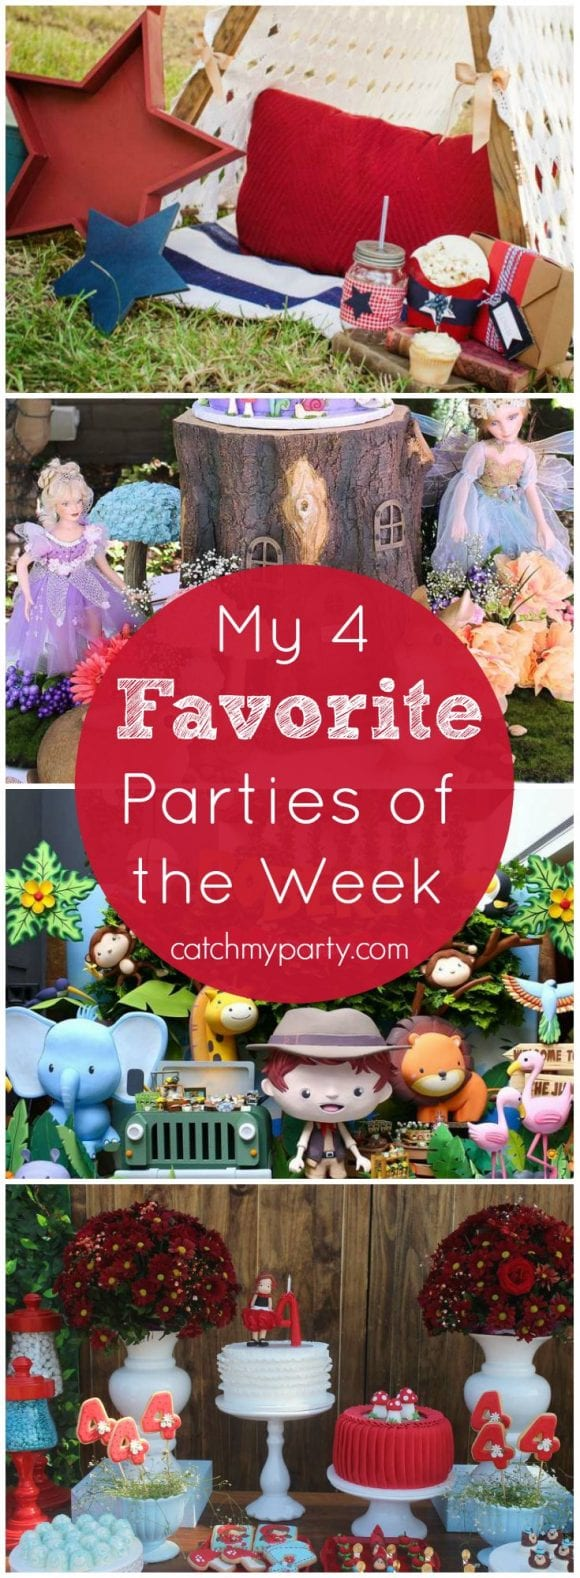 This week my favorite parties include: a red, white, and blue patriotic party, an enchanting fairy garden birthday, a wild jungle safari party, and a Little Red Riding Hood birthday party! | CatchMyParty.com